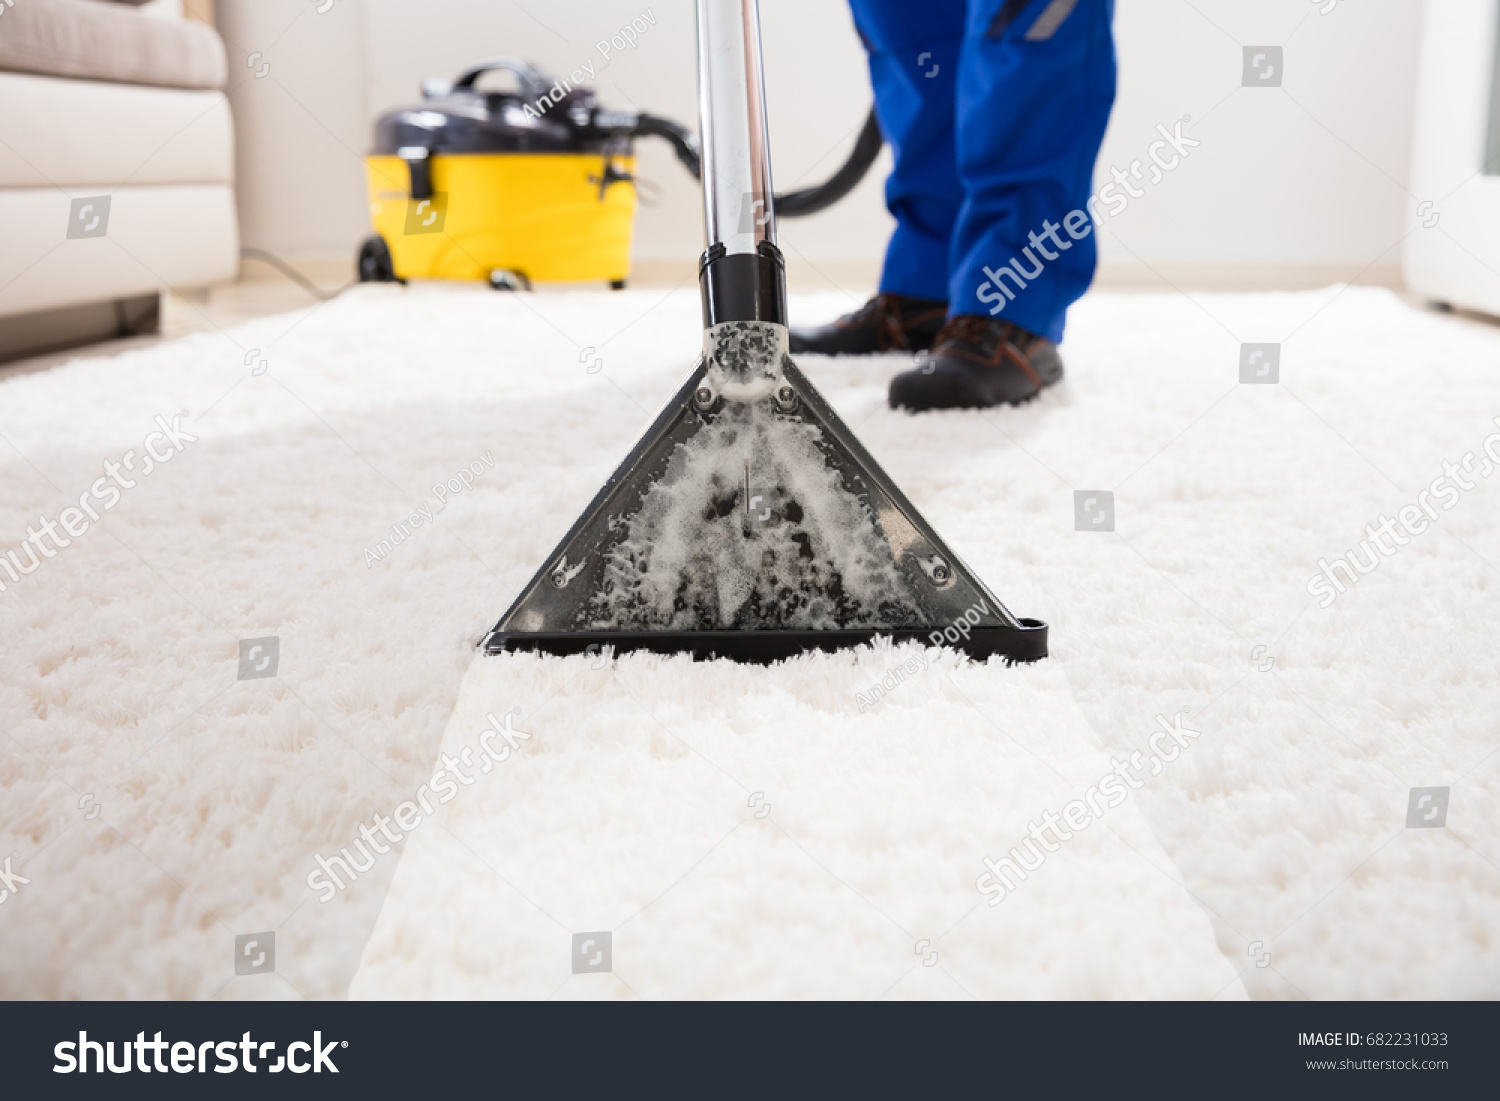 Close-up Of A Janitor Cleaning Carpet With Vacuum Cleaner At Home #682231033